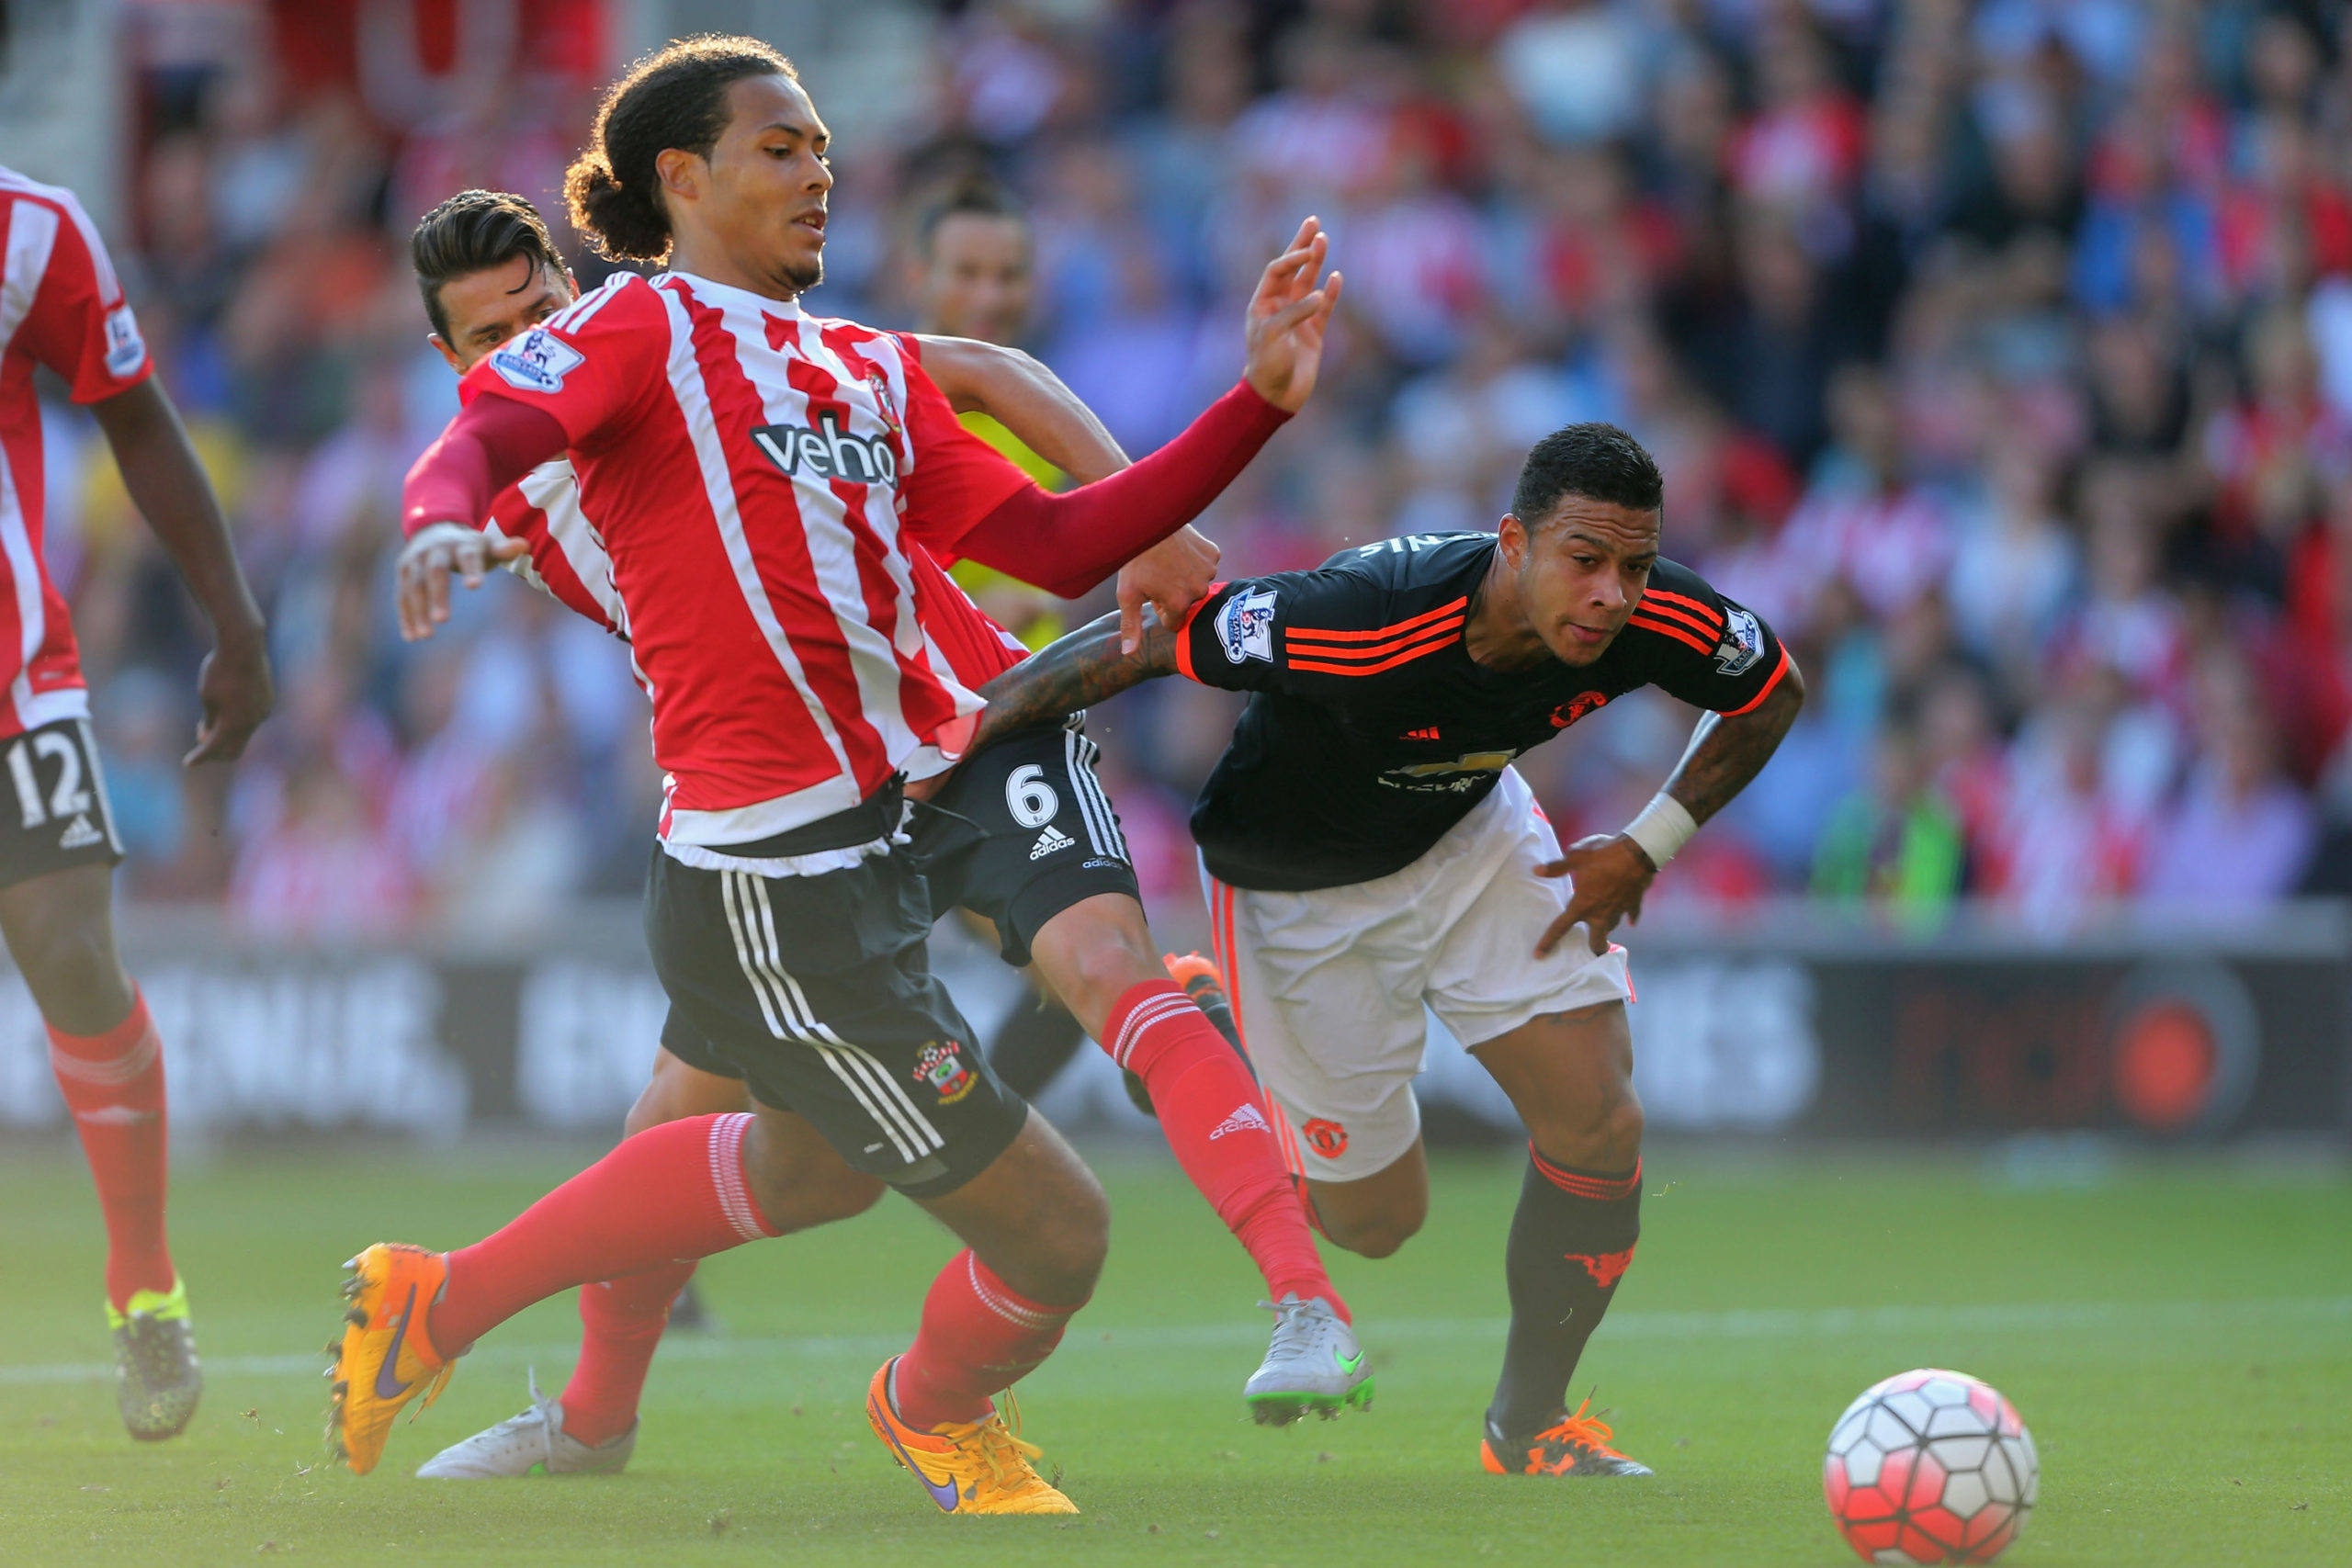 Van Dijk in action for Southampton